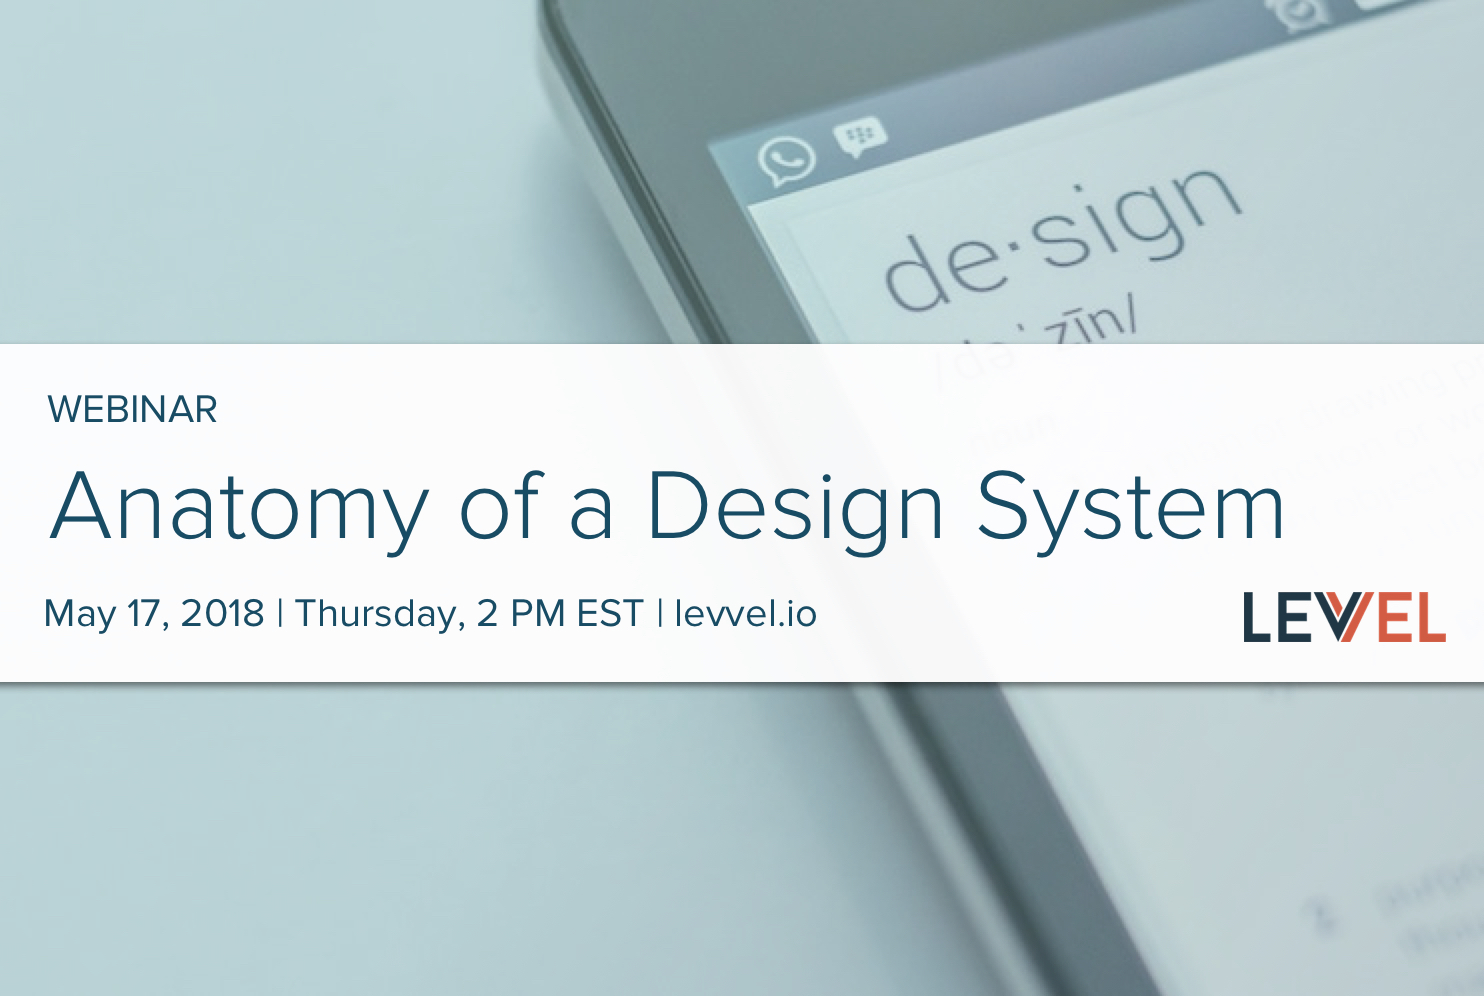 Anatomy of a Design System